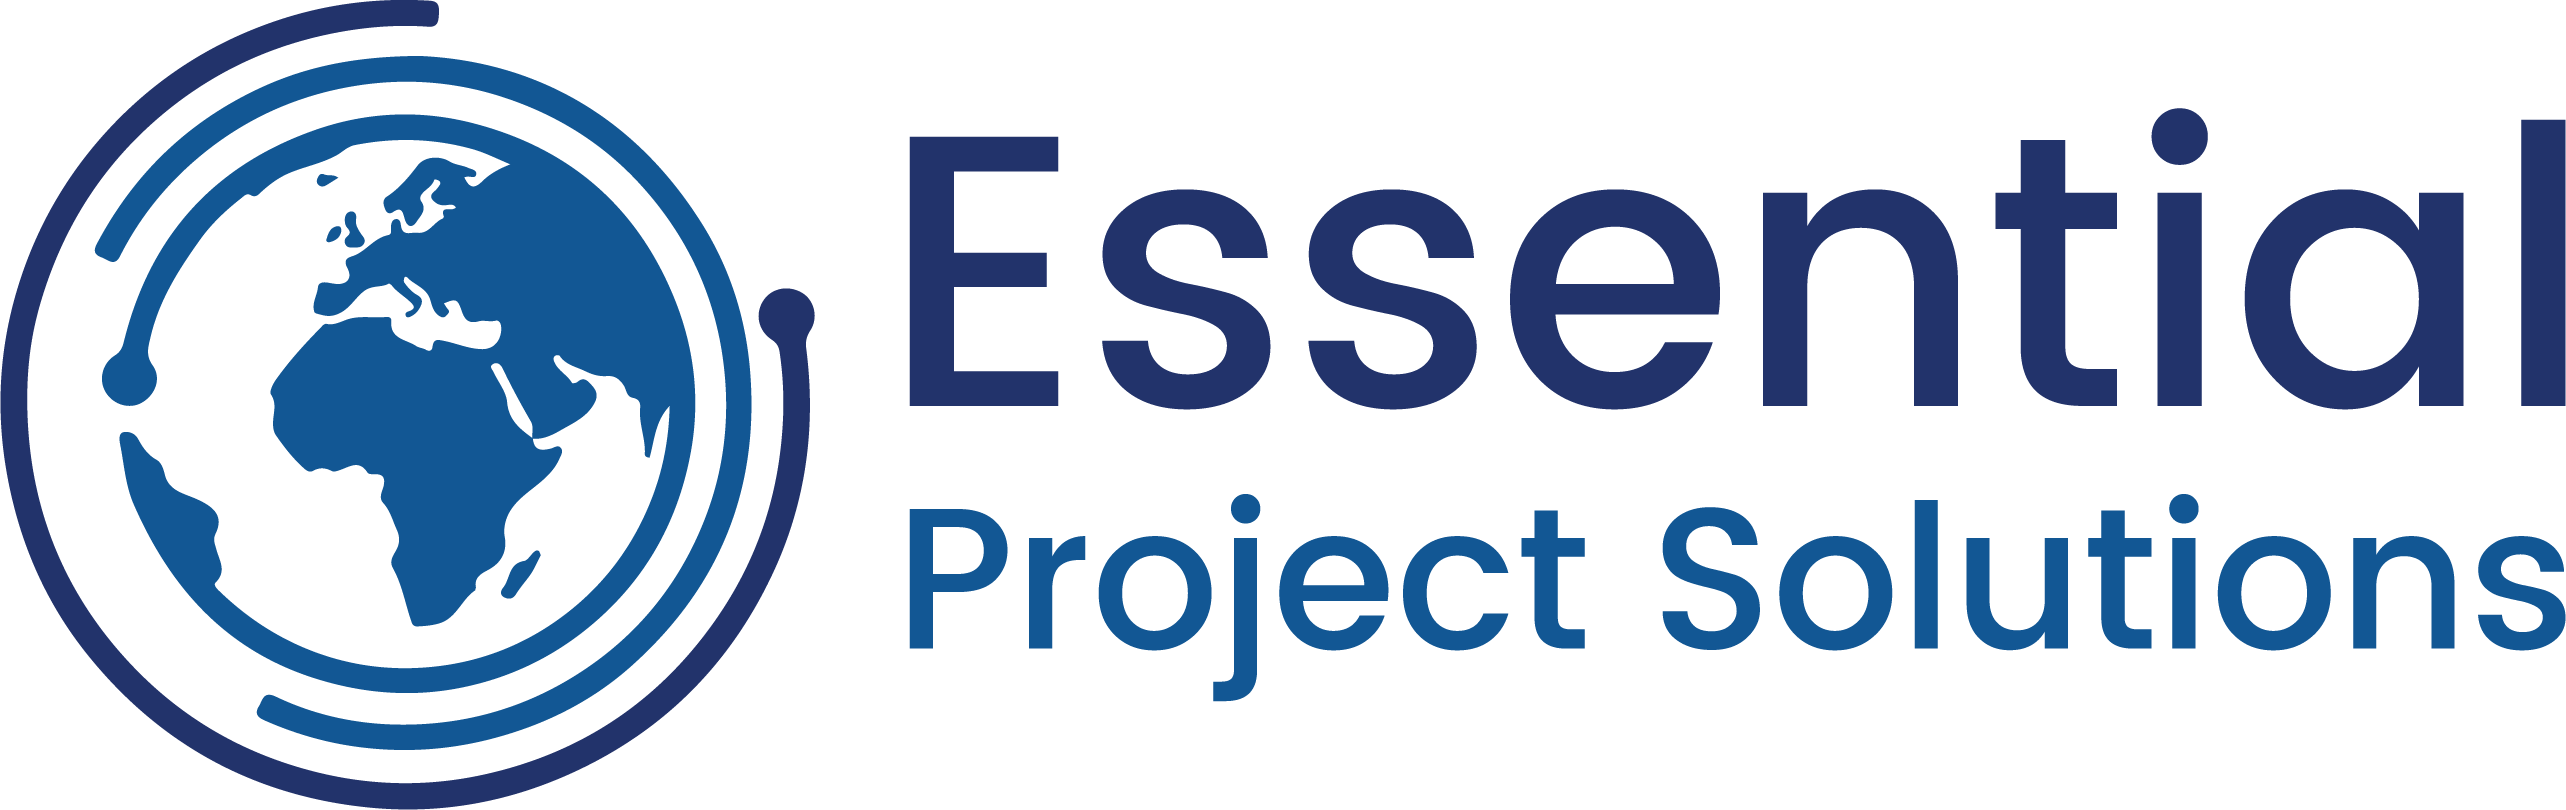 Essential Project Solutions